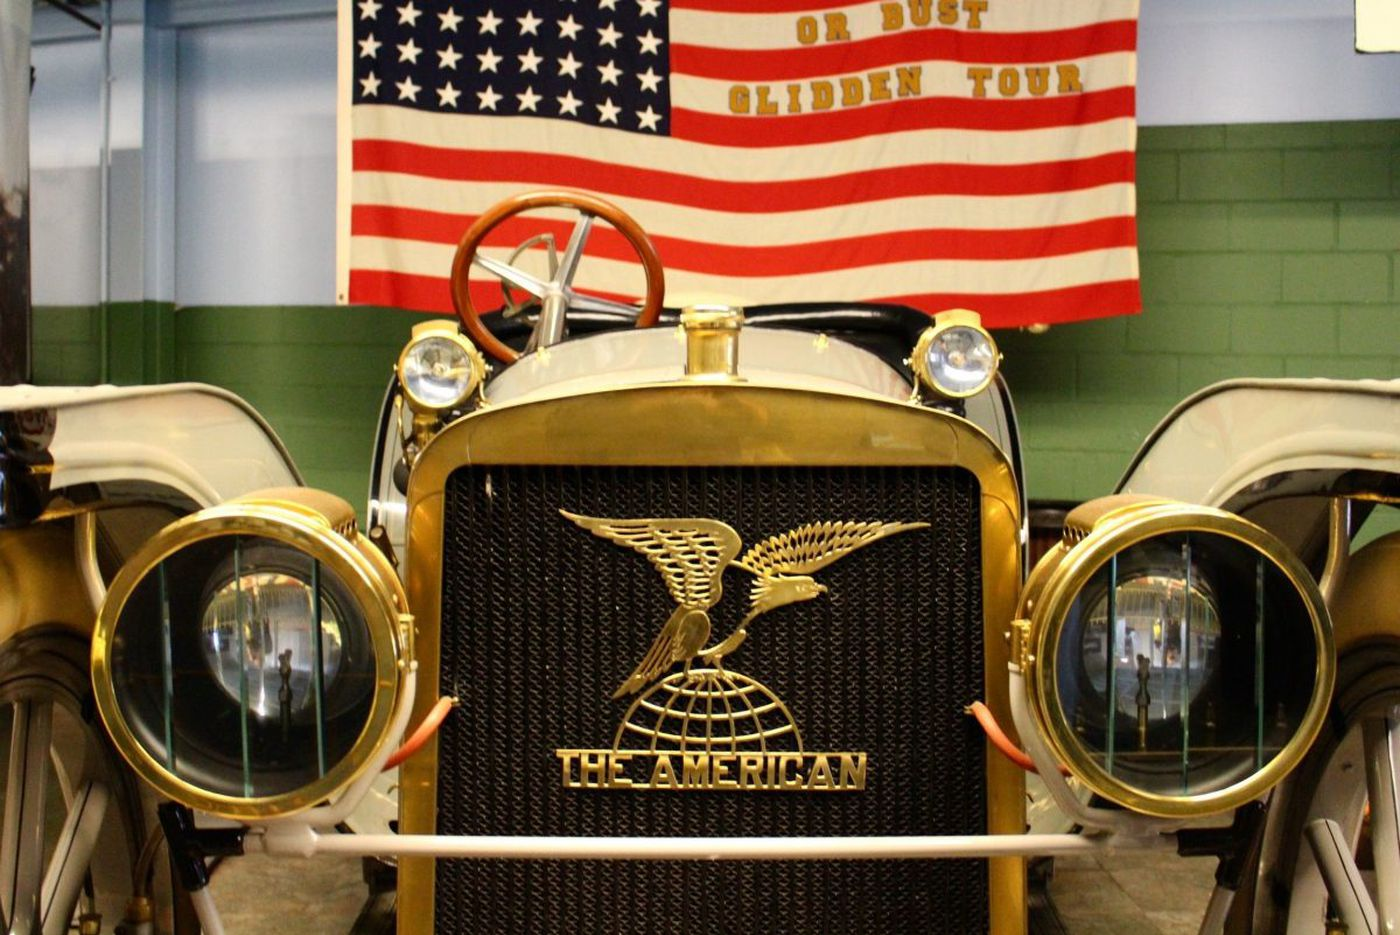 Field-Tested Travel Tip: The World Class Auto Museum in Philly's Driveway